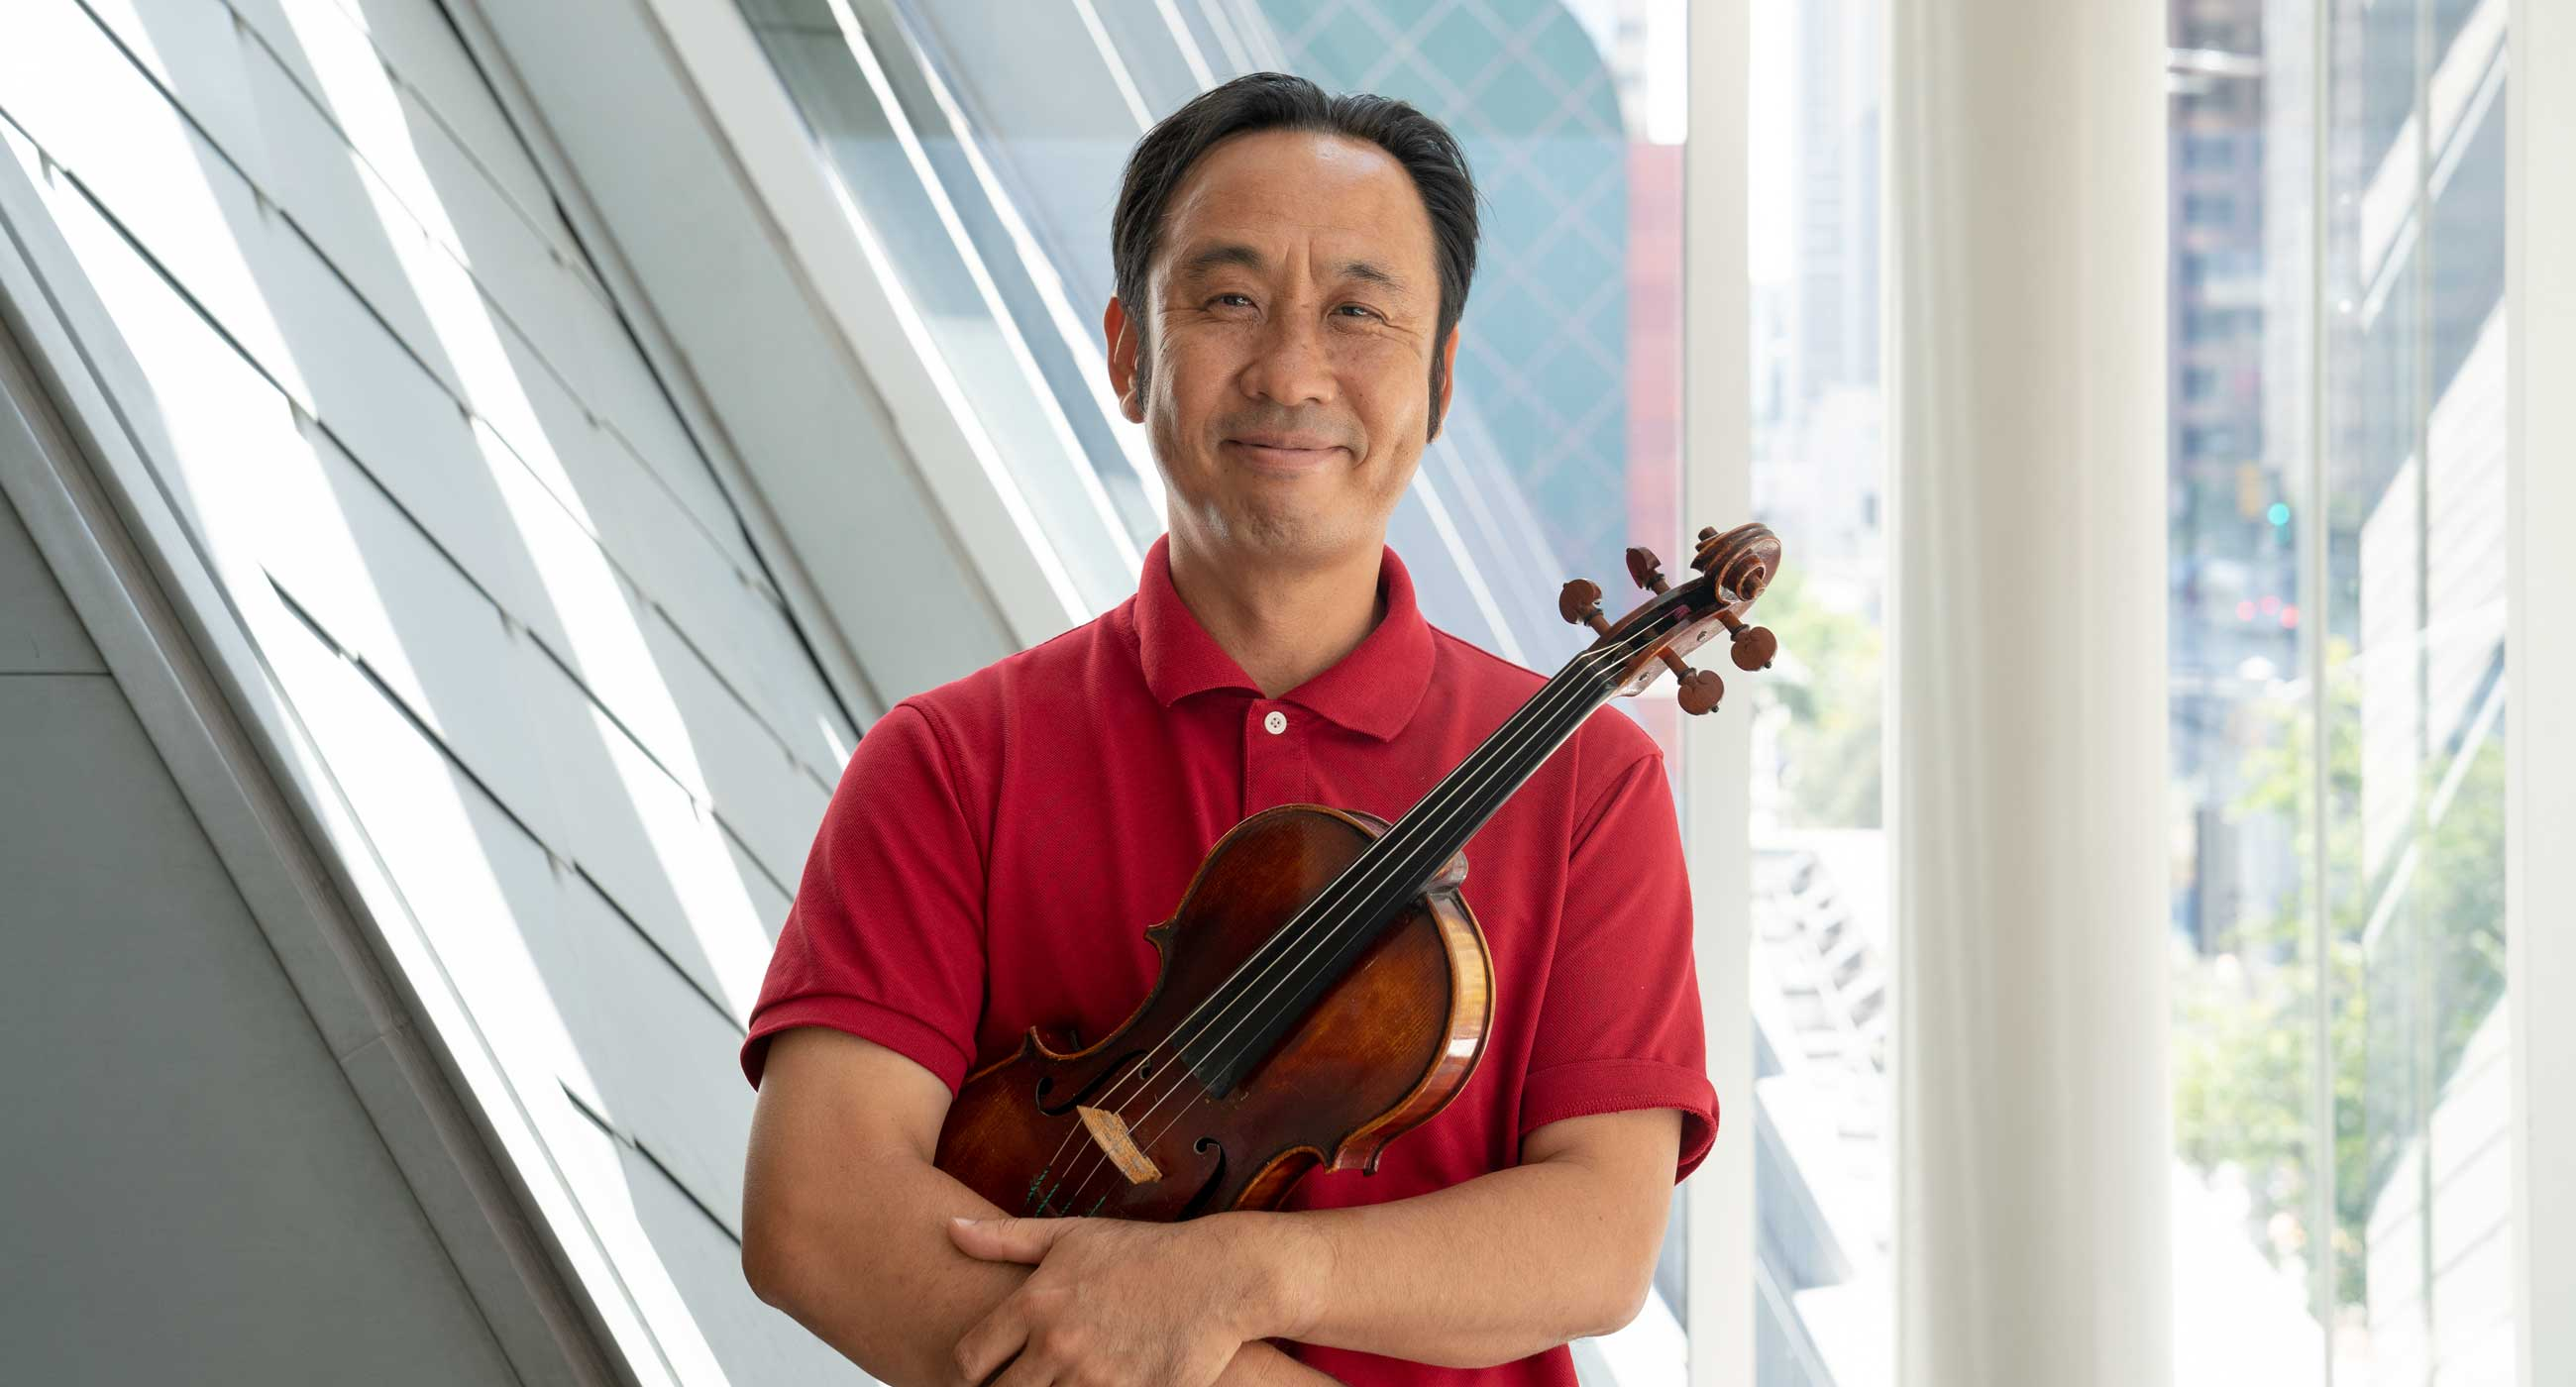 Chan Ho Yun holding a violin and smiling in front of a window.